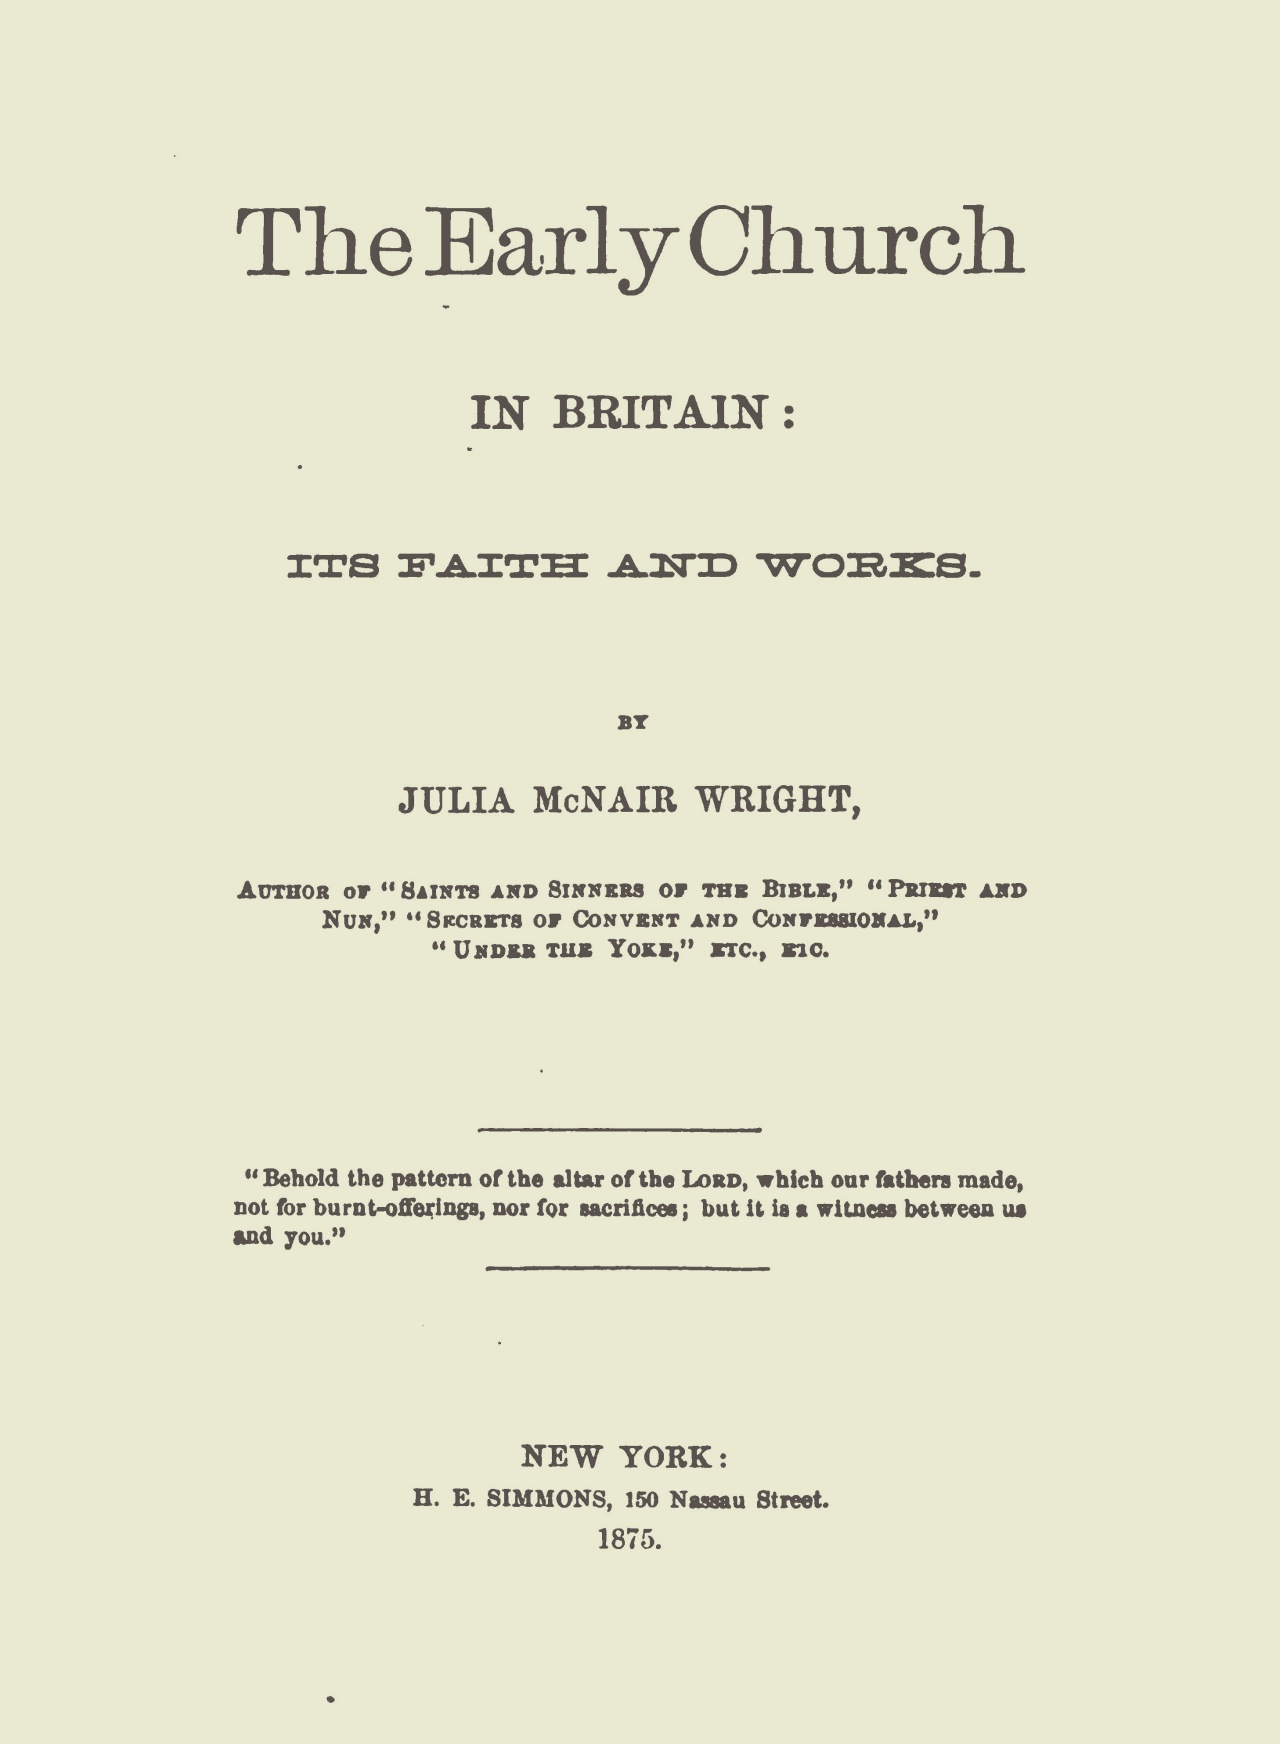 Wright, Julia McNair, The Early Church in Britain Title Page.jpg